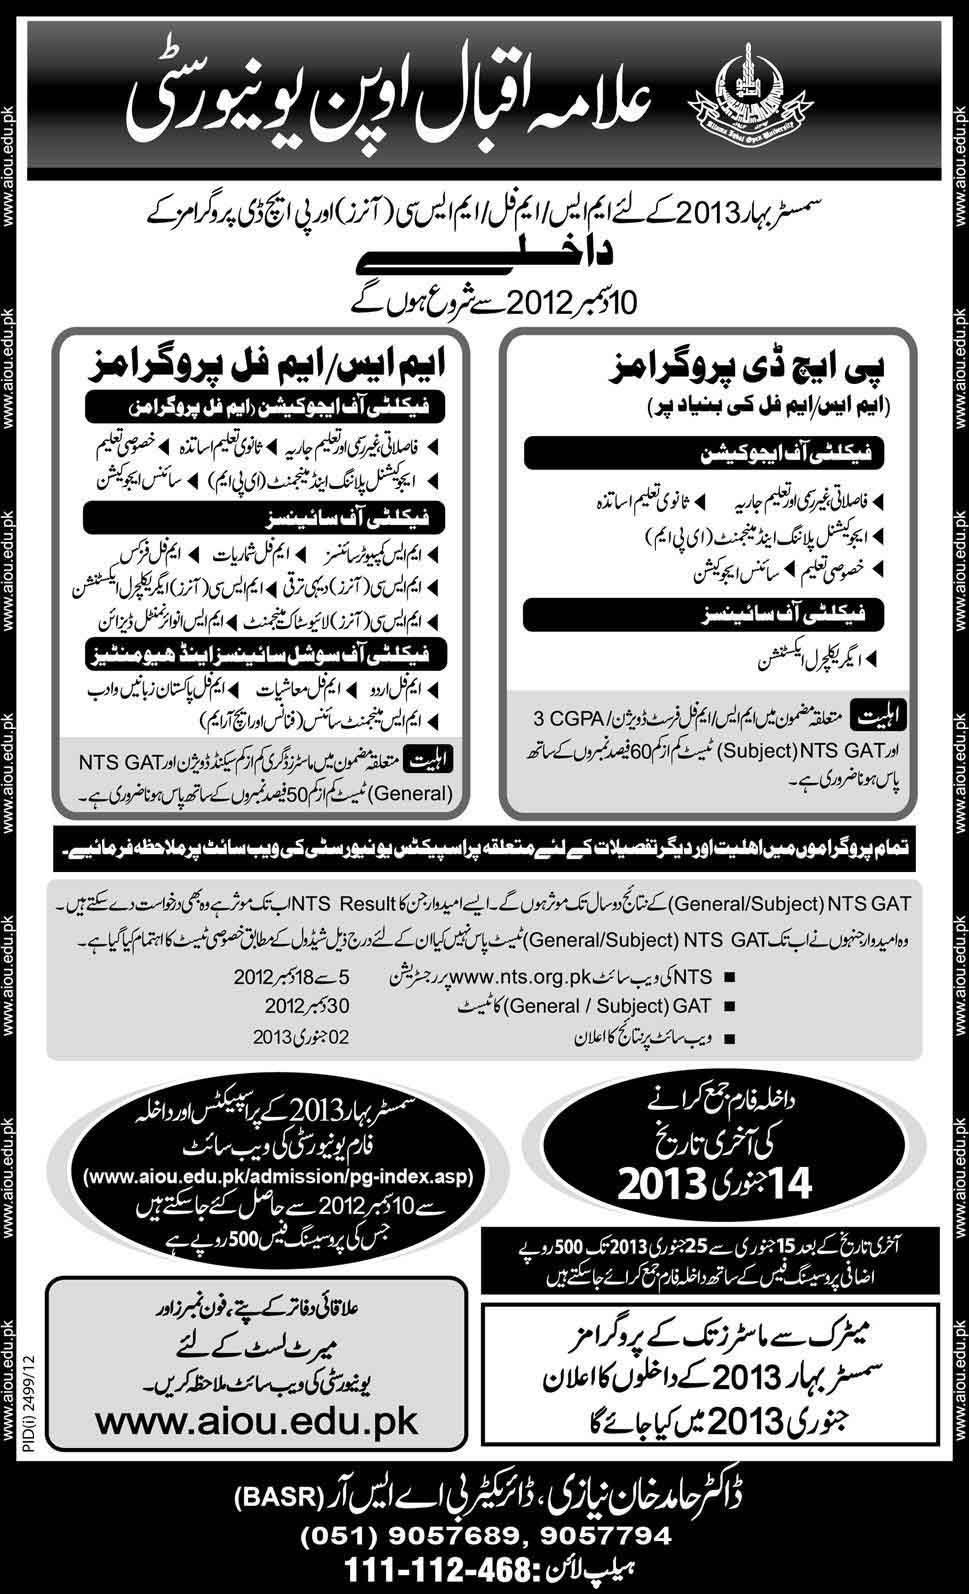 Allama Iqbal Open University Islamabad Admission 2013